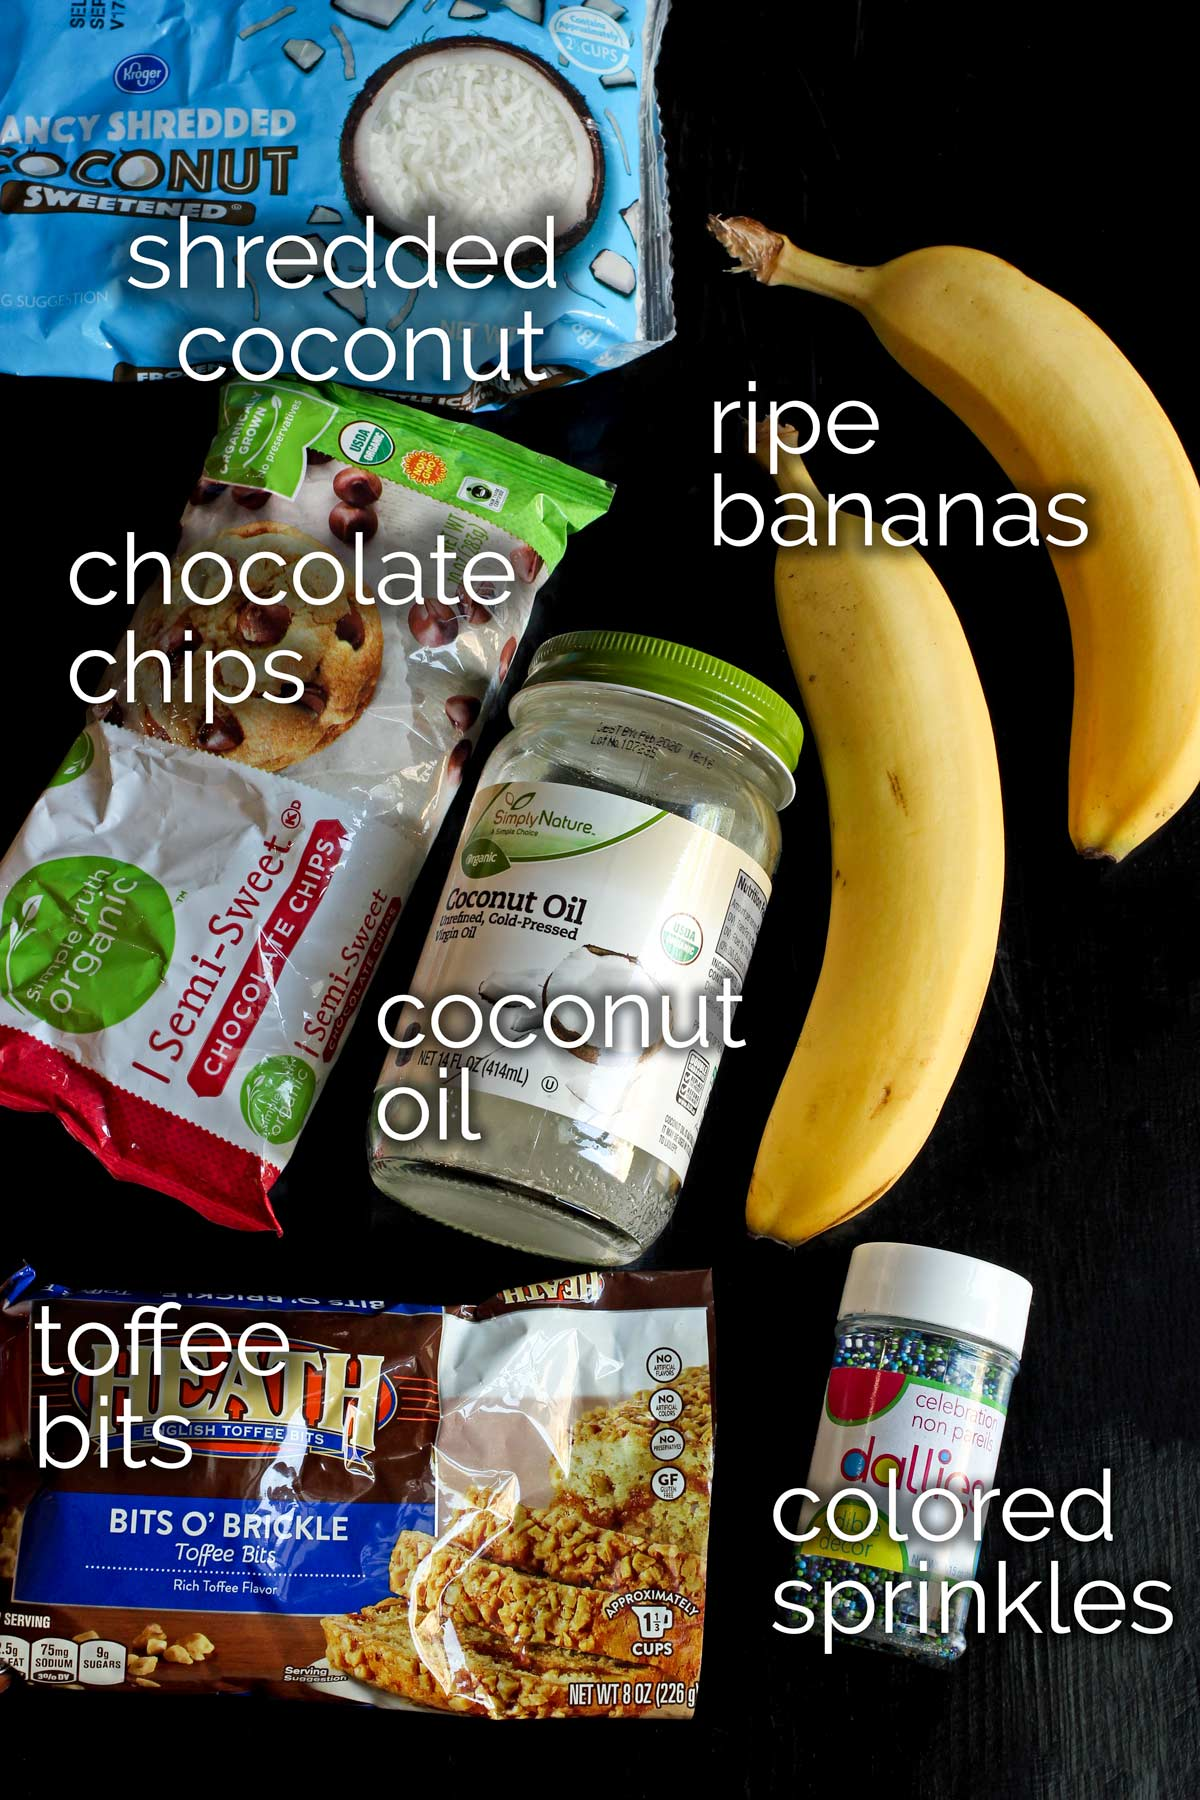 ingredients for frozen chocolate bananas laid out on tabletop.